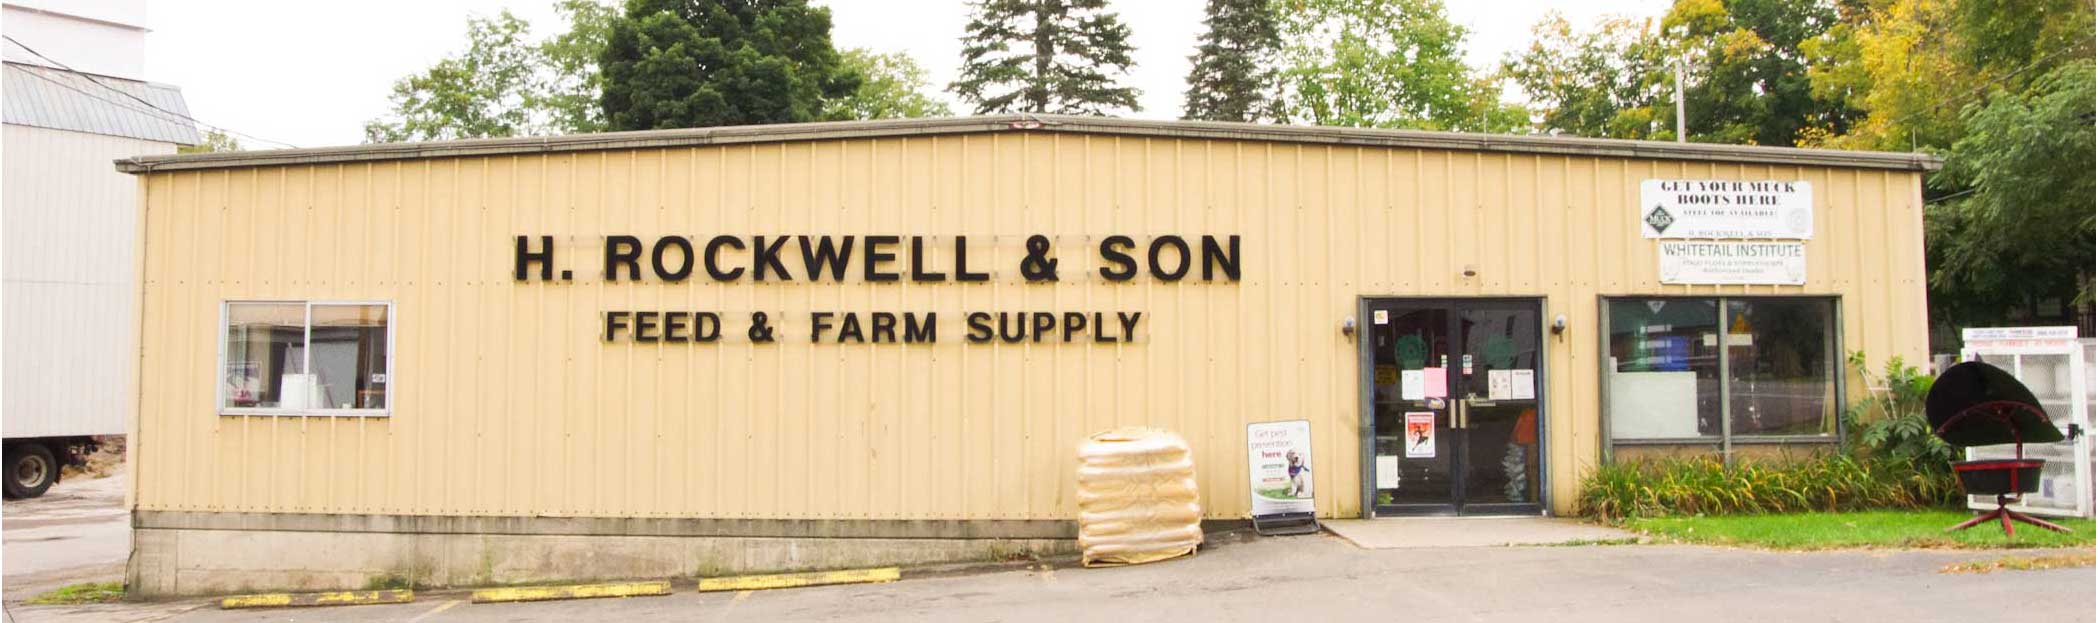 H. Rockwell & Son